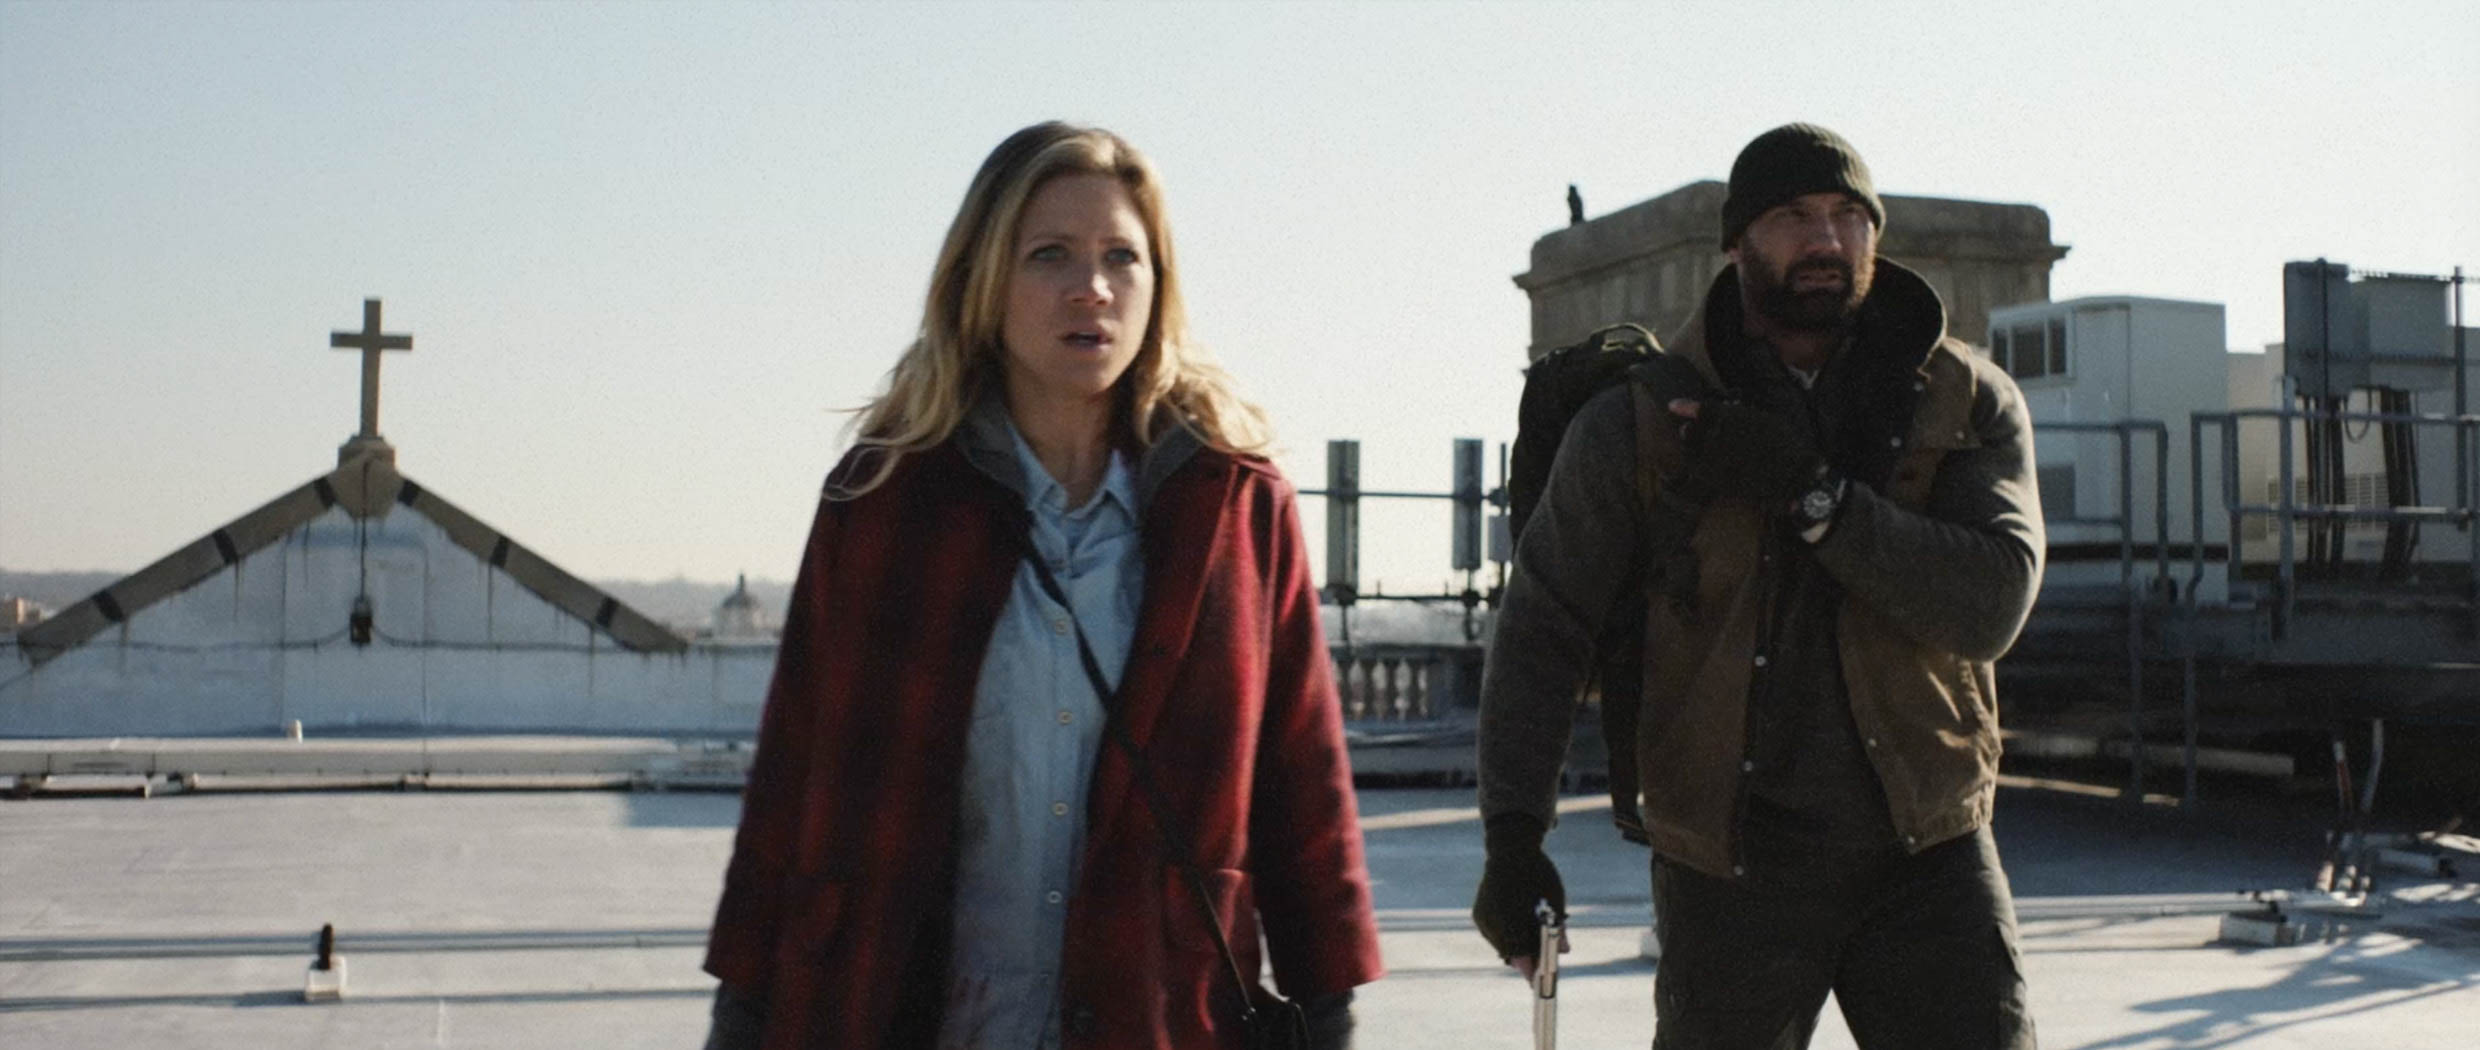 Brittany Snow and Dave Bautista appear in <i>Bushwick</i> by Cary Murnion and Jonathan Milott, an official selection of the Midnight program at the 2017 Sundance Film Festival. Courtesy of Sundance Institute   photo by Lyle Vincent.